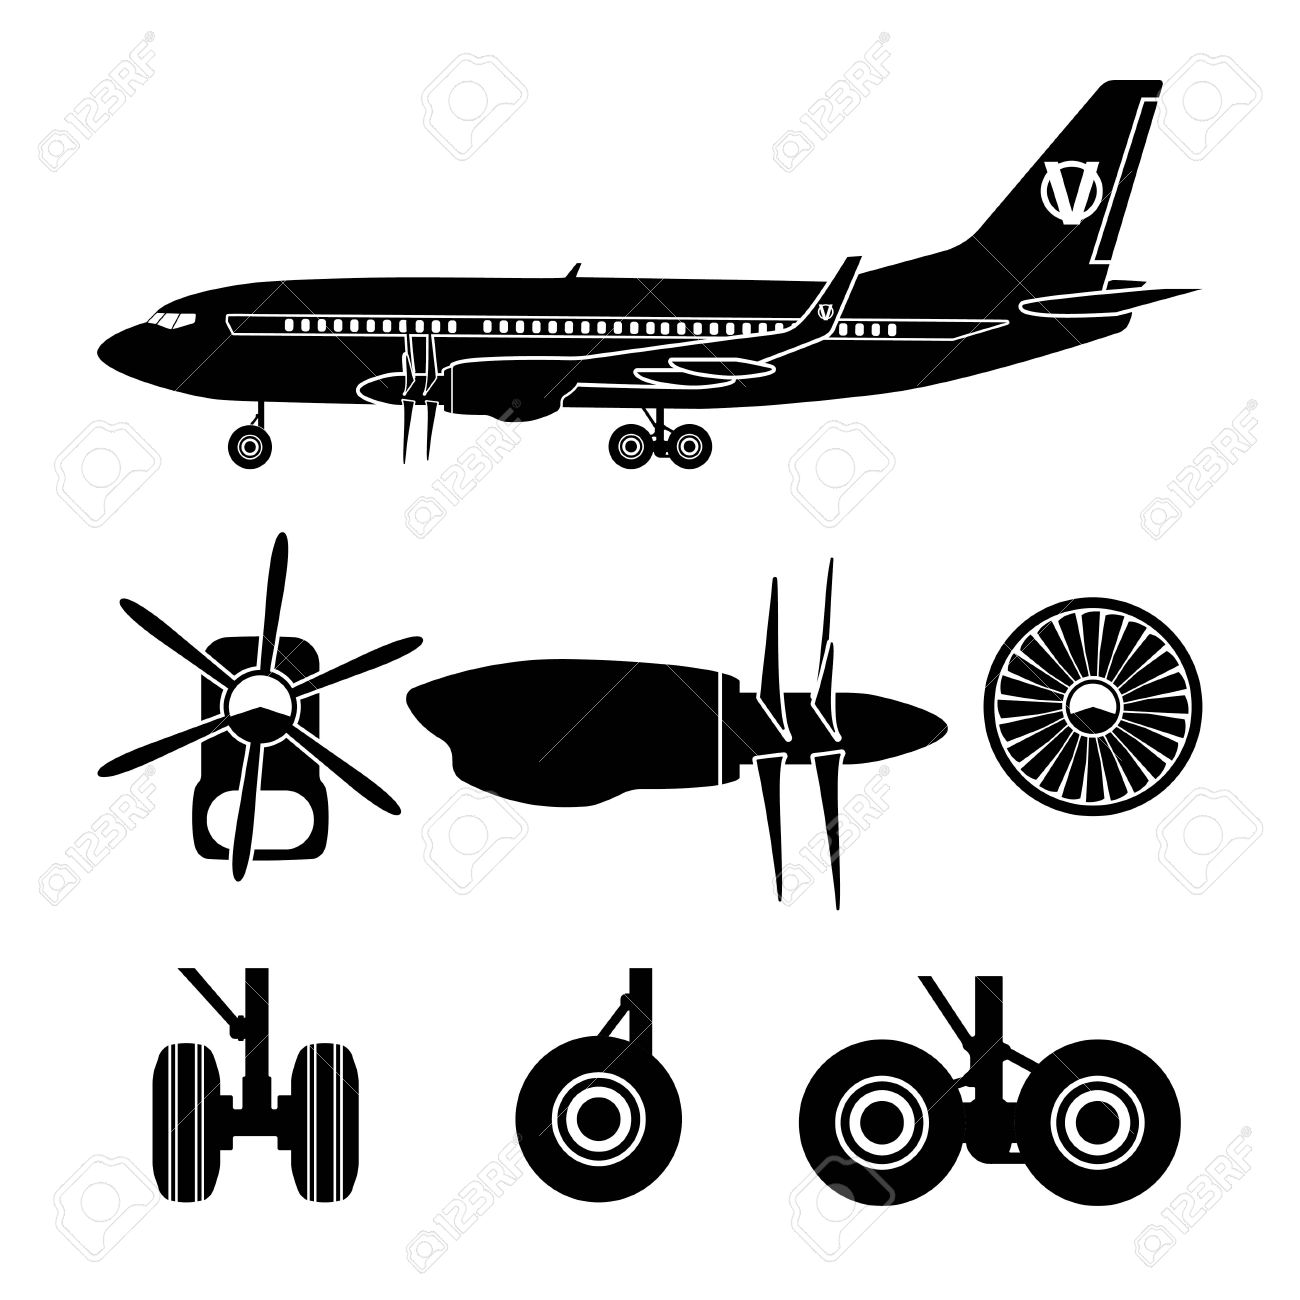 Jets Constructor. Black Silhouettes Aircraft Parts. Collection.